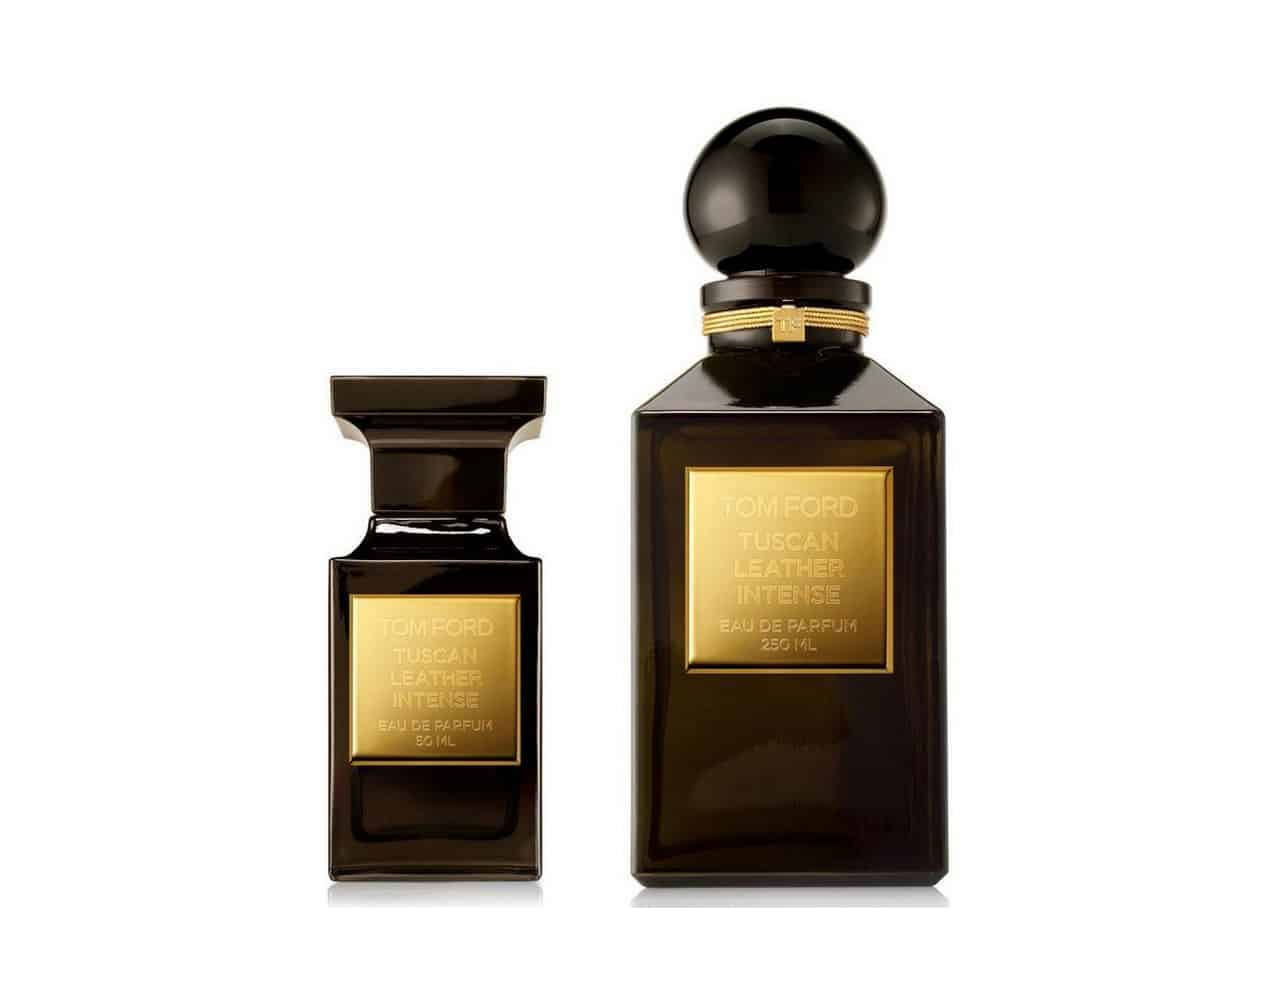 Private Blend Tuscan Intense Leather Eau de Parfum by Tom Ford